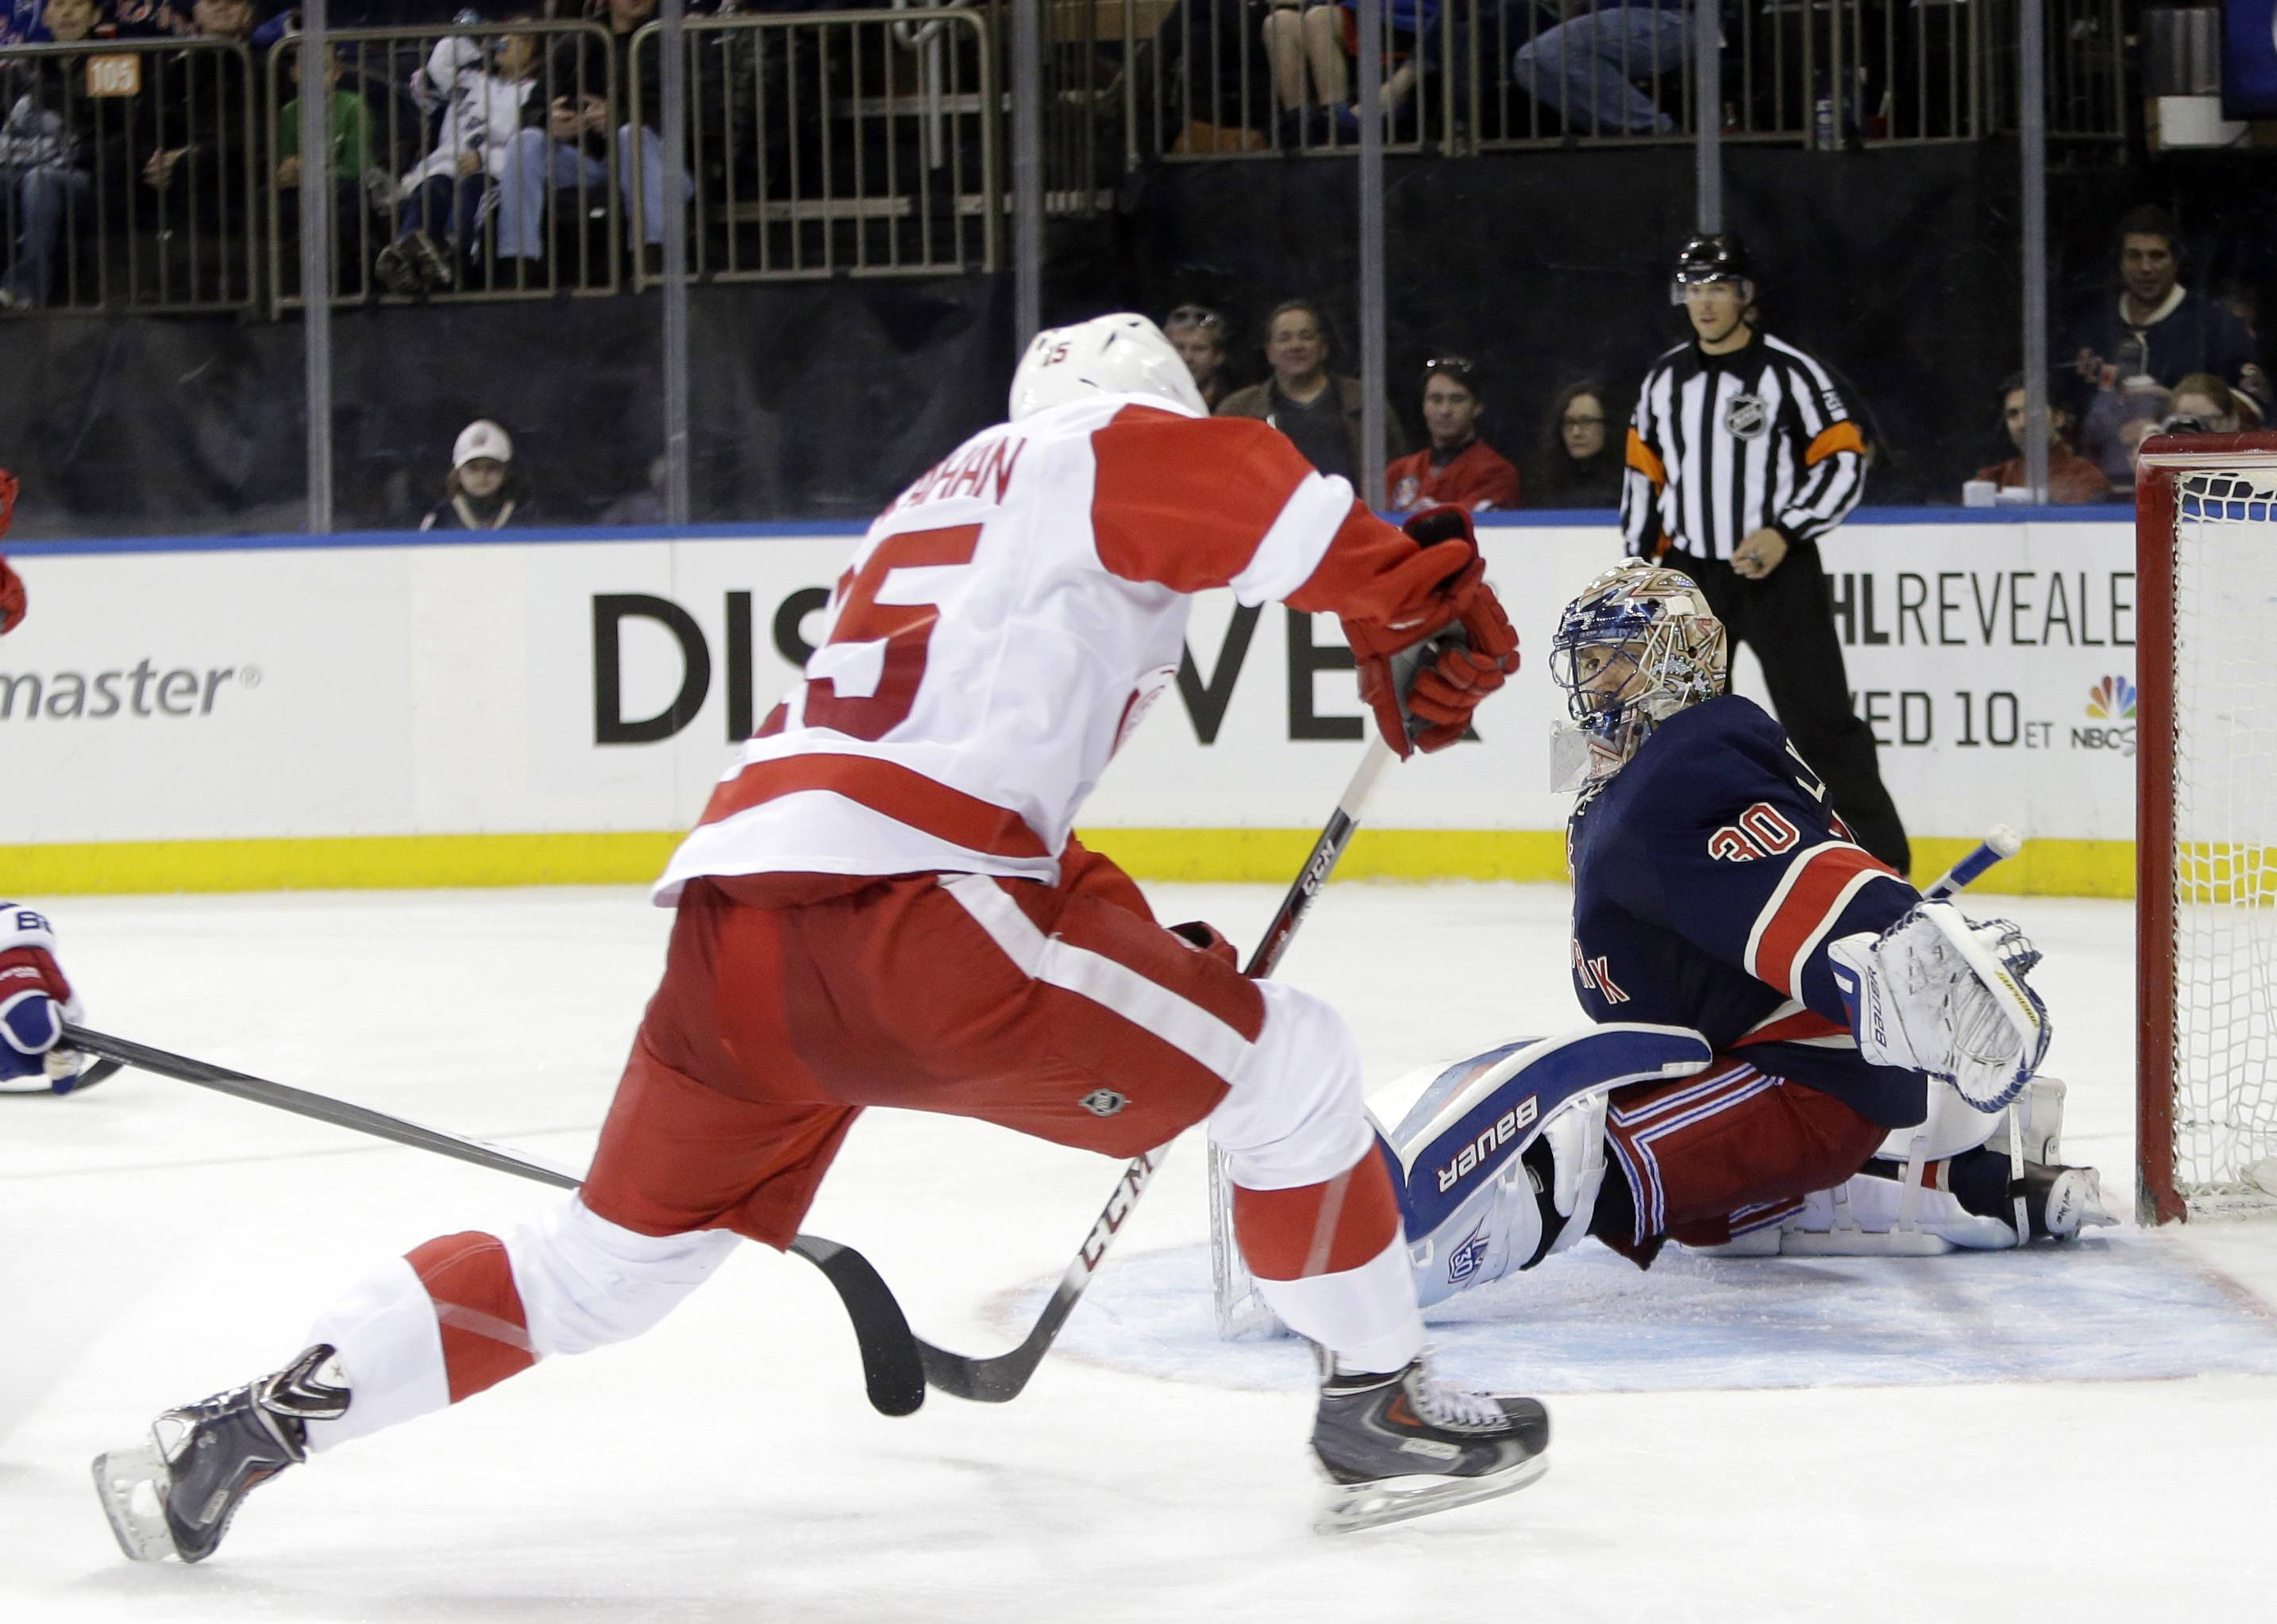 New York Rangers goalie Henrik Lundqvist (30), of Sweden, dives to stop a shot by Detroit Red Wings' Riley Sheahan (15) during the third period Sunday in New York. The Rangers won the game 3-0.